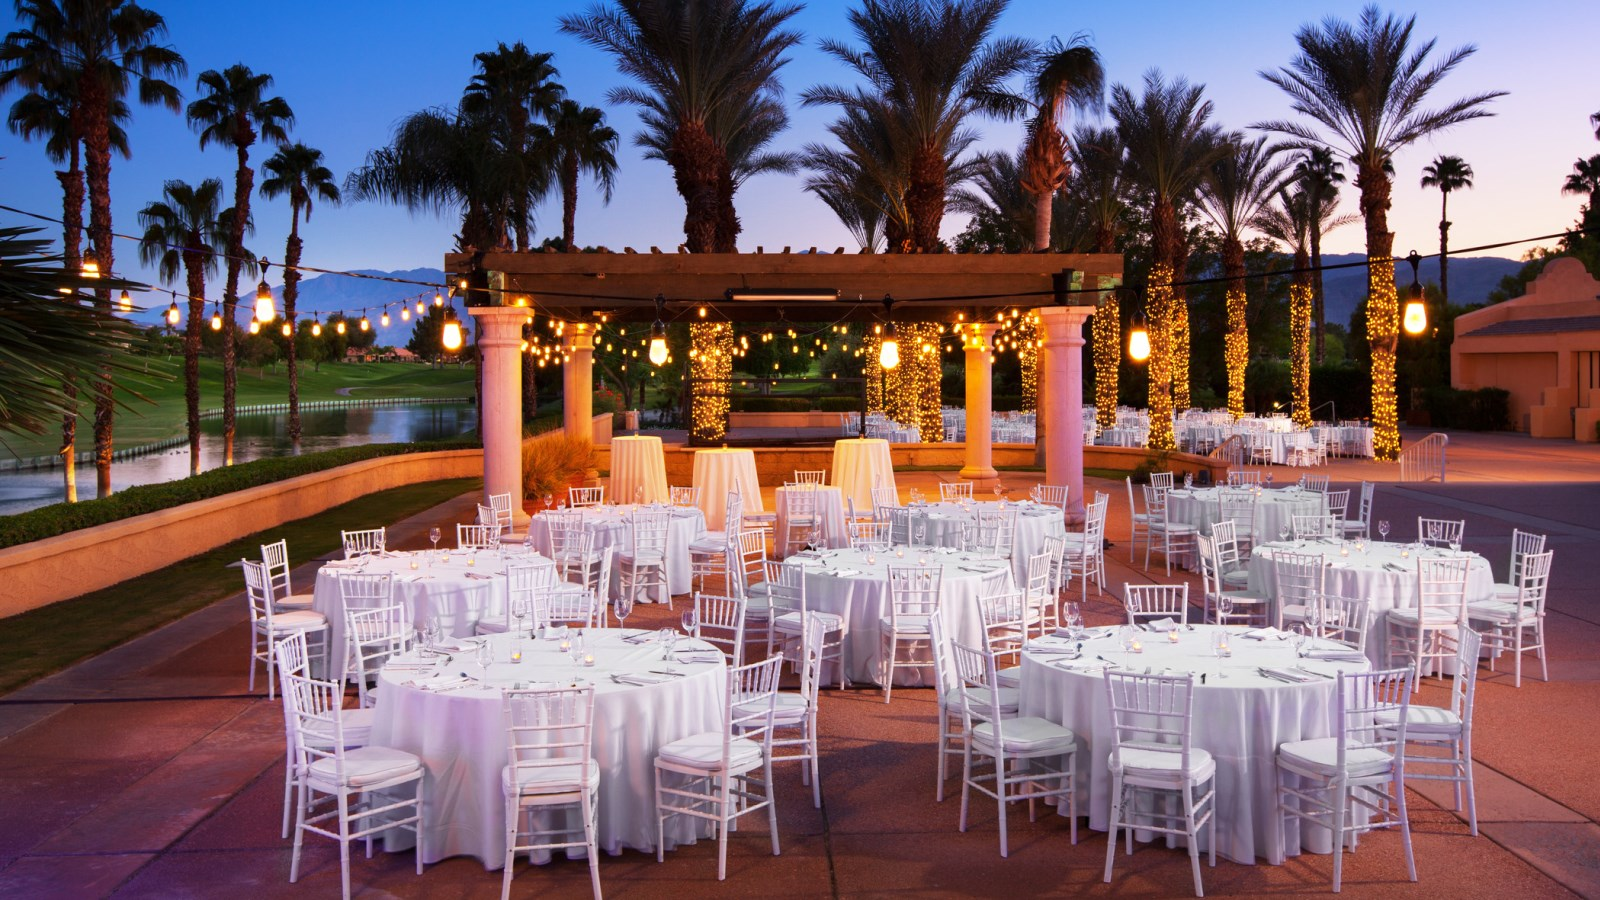 Palm Springs Weddings - Weddings